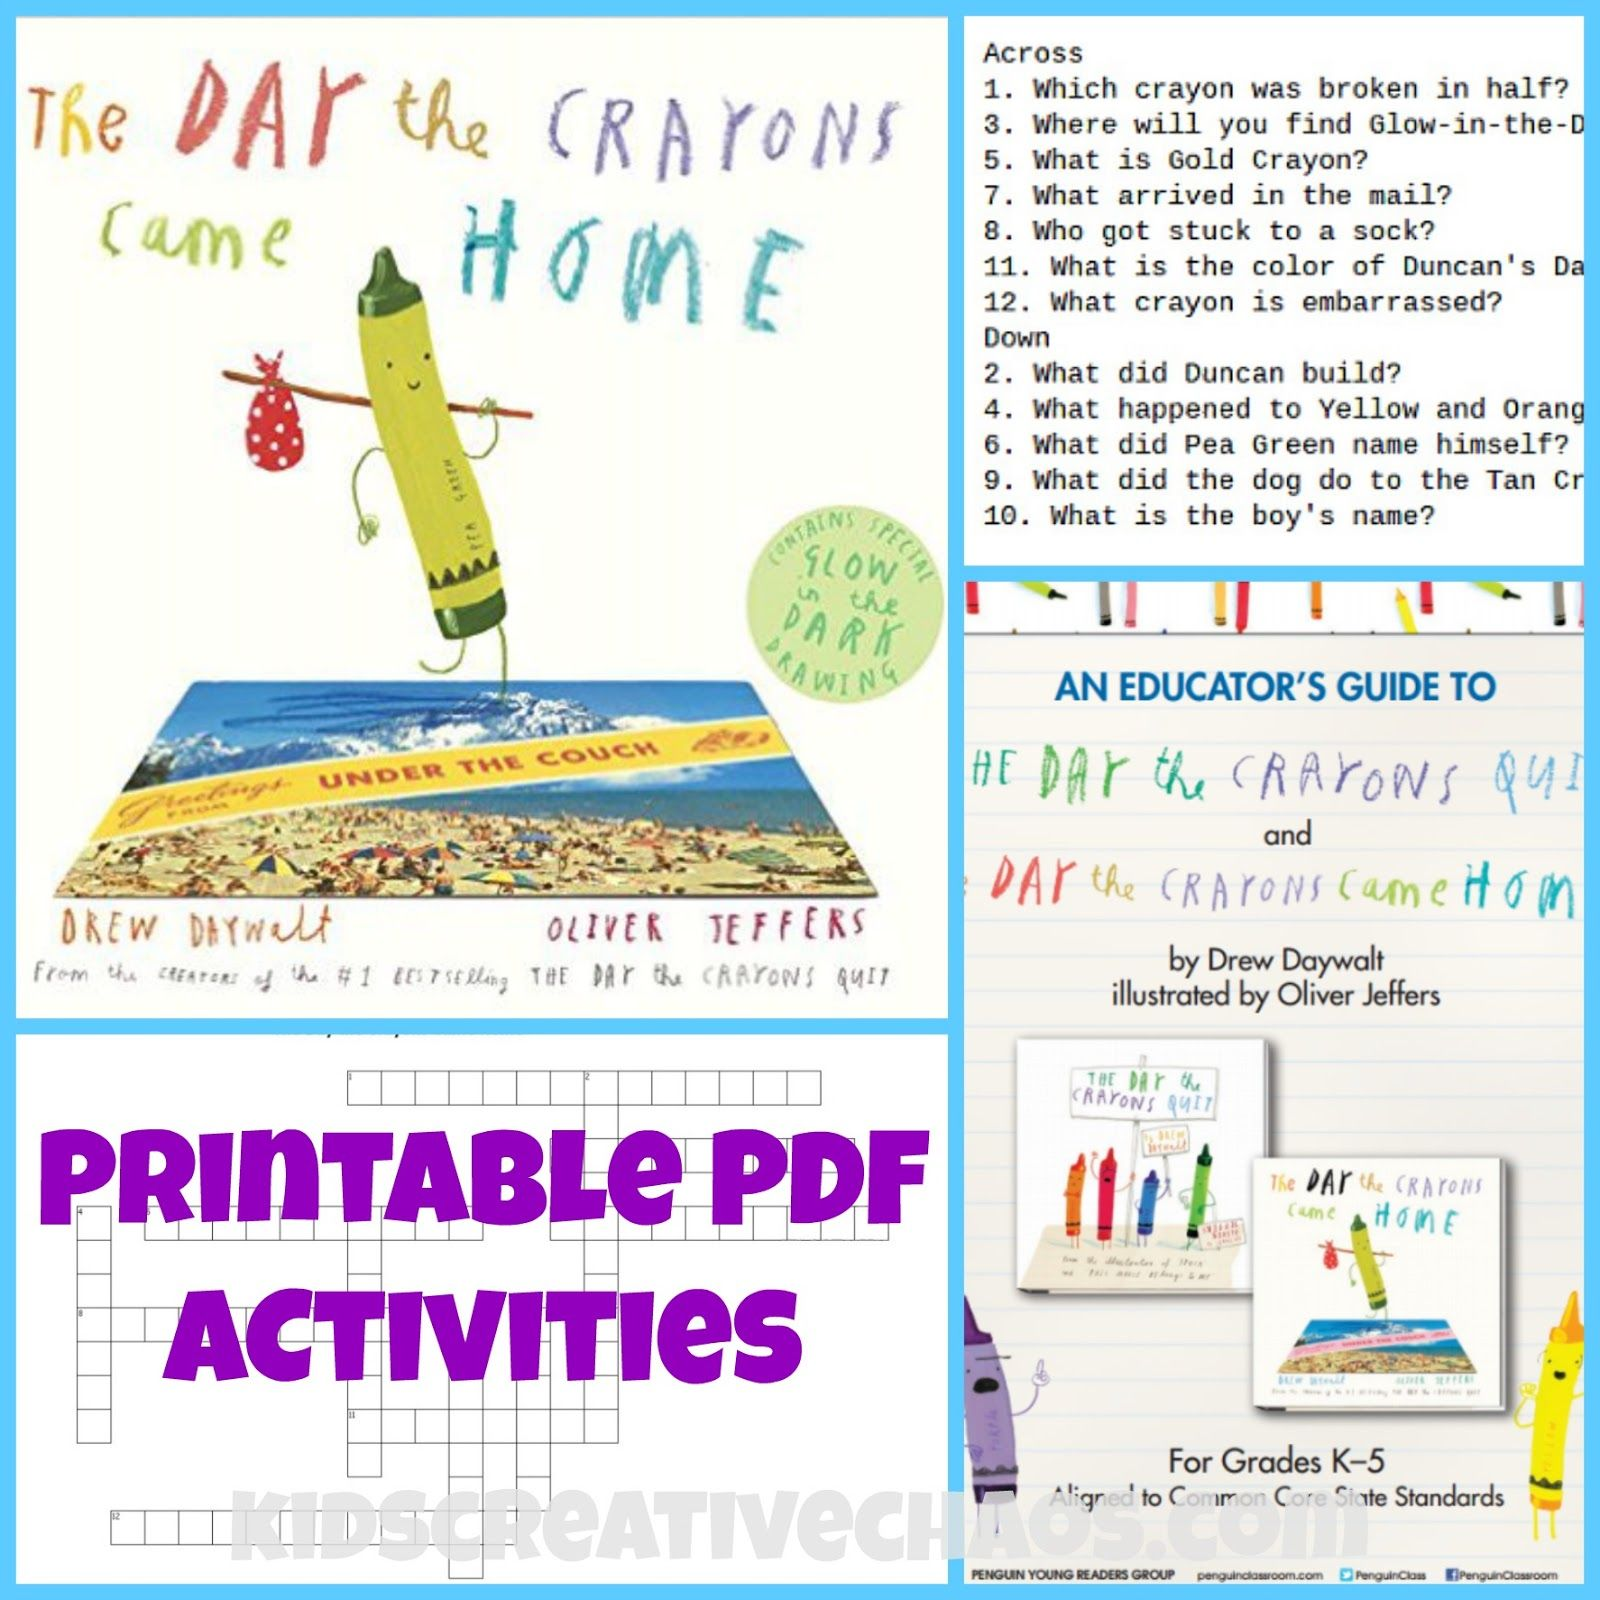 The Day The Crayons Came Home Activities Book Review